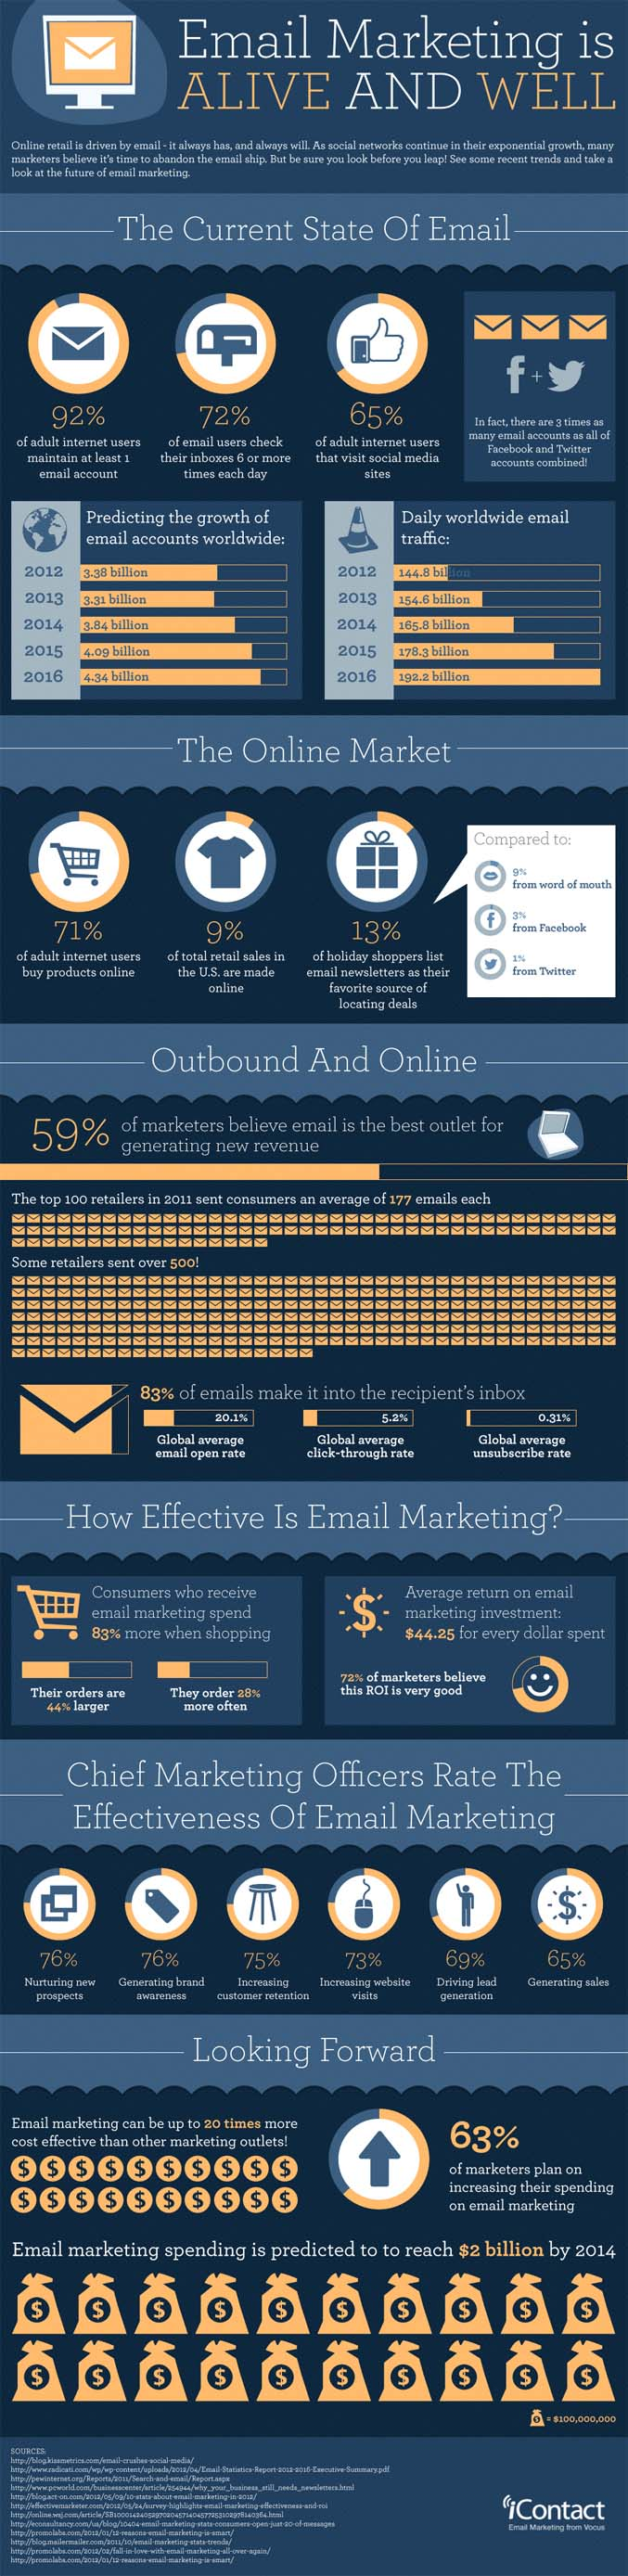 Email Marketing Effectiveness-Infographic